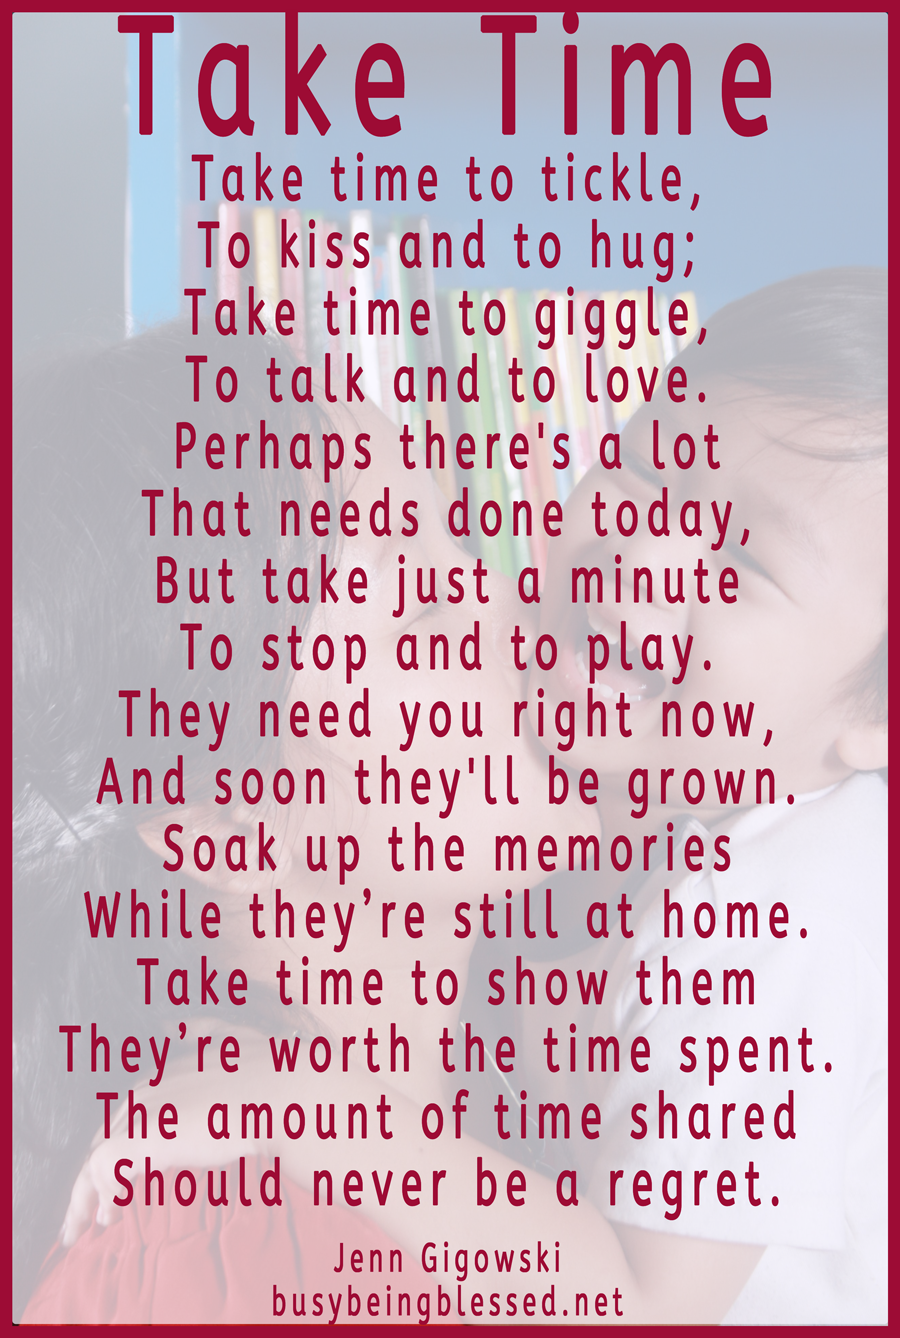 """Take Time"" by Jenn Gigowski has been used with permission and is from http://www.busybeingblessed.net. There is a free printable of the poem for subscribers to www.busybeingblessed.net; please click on the image for the direct link."